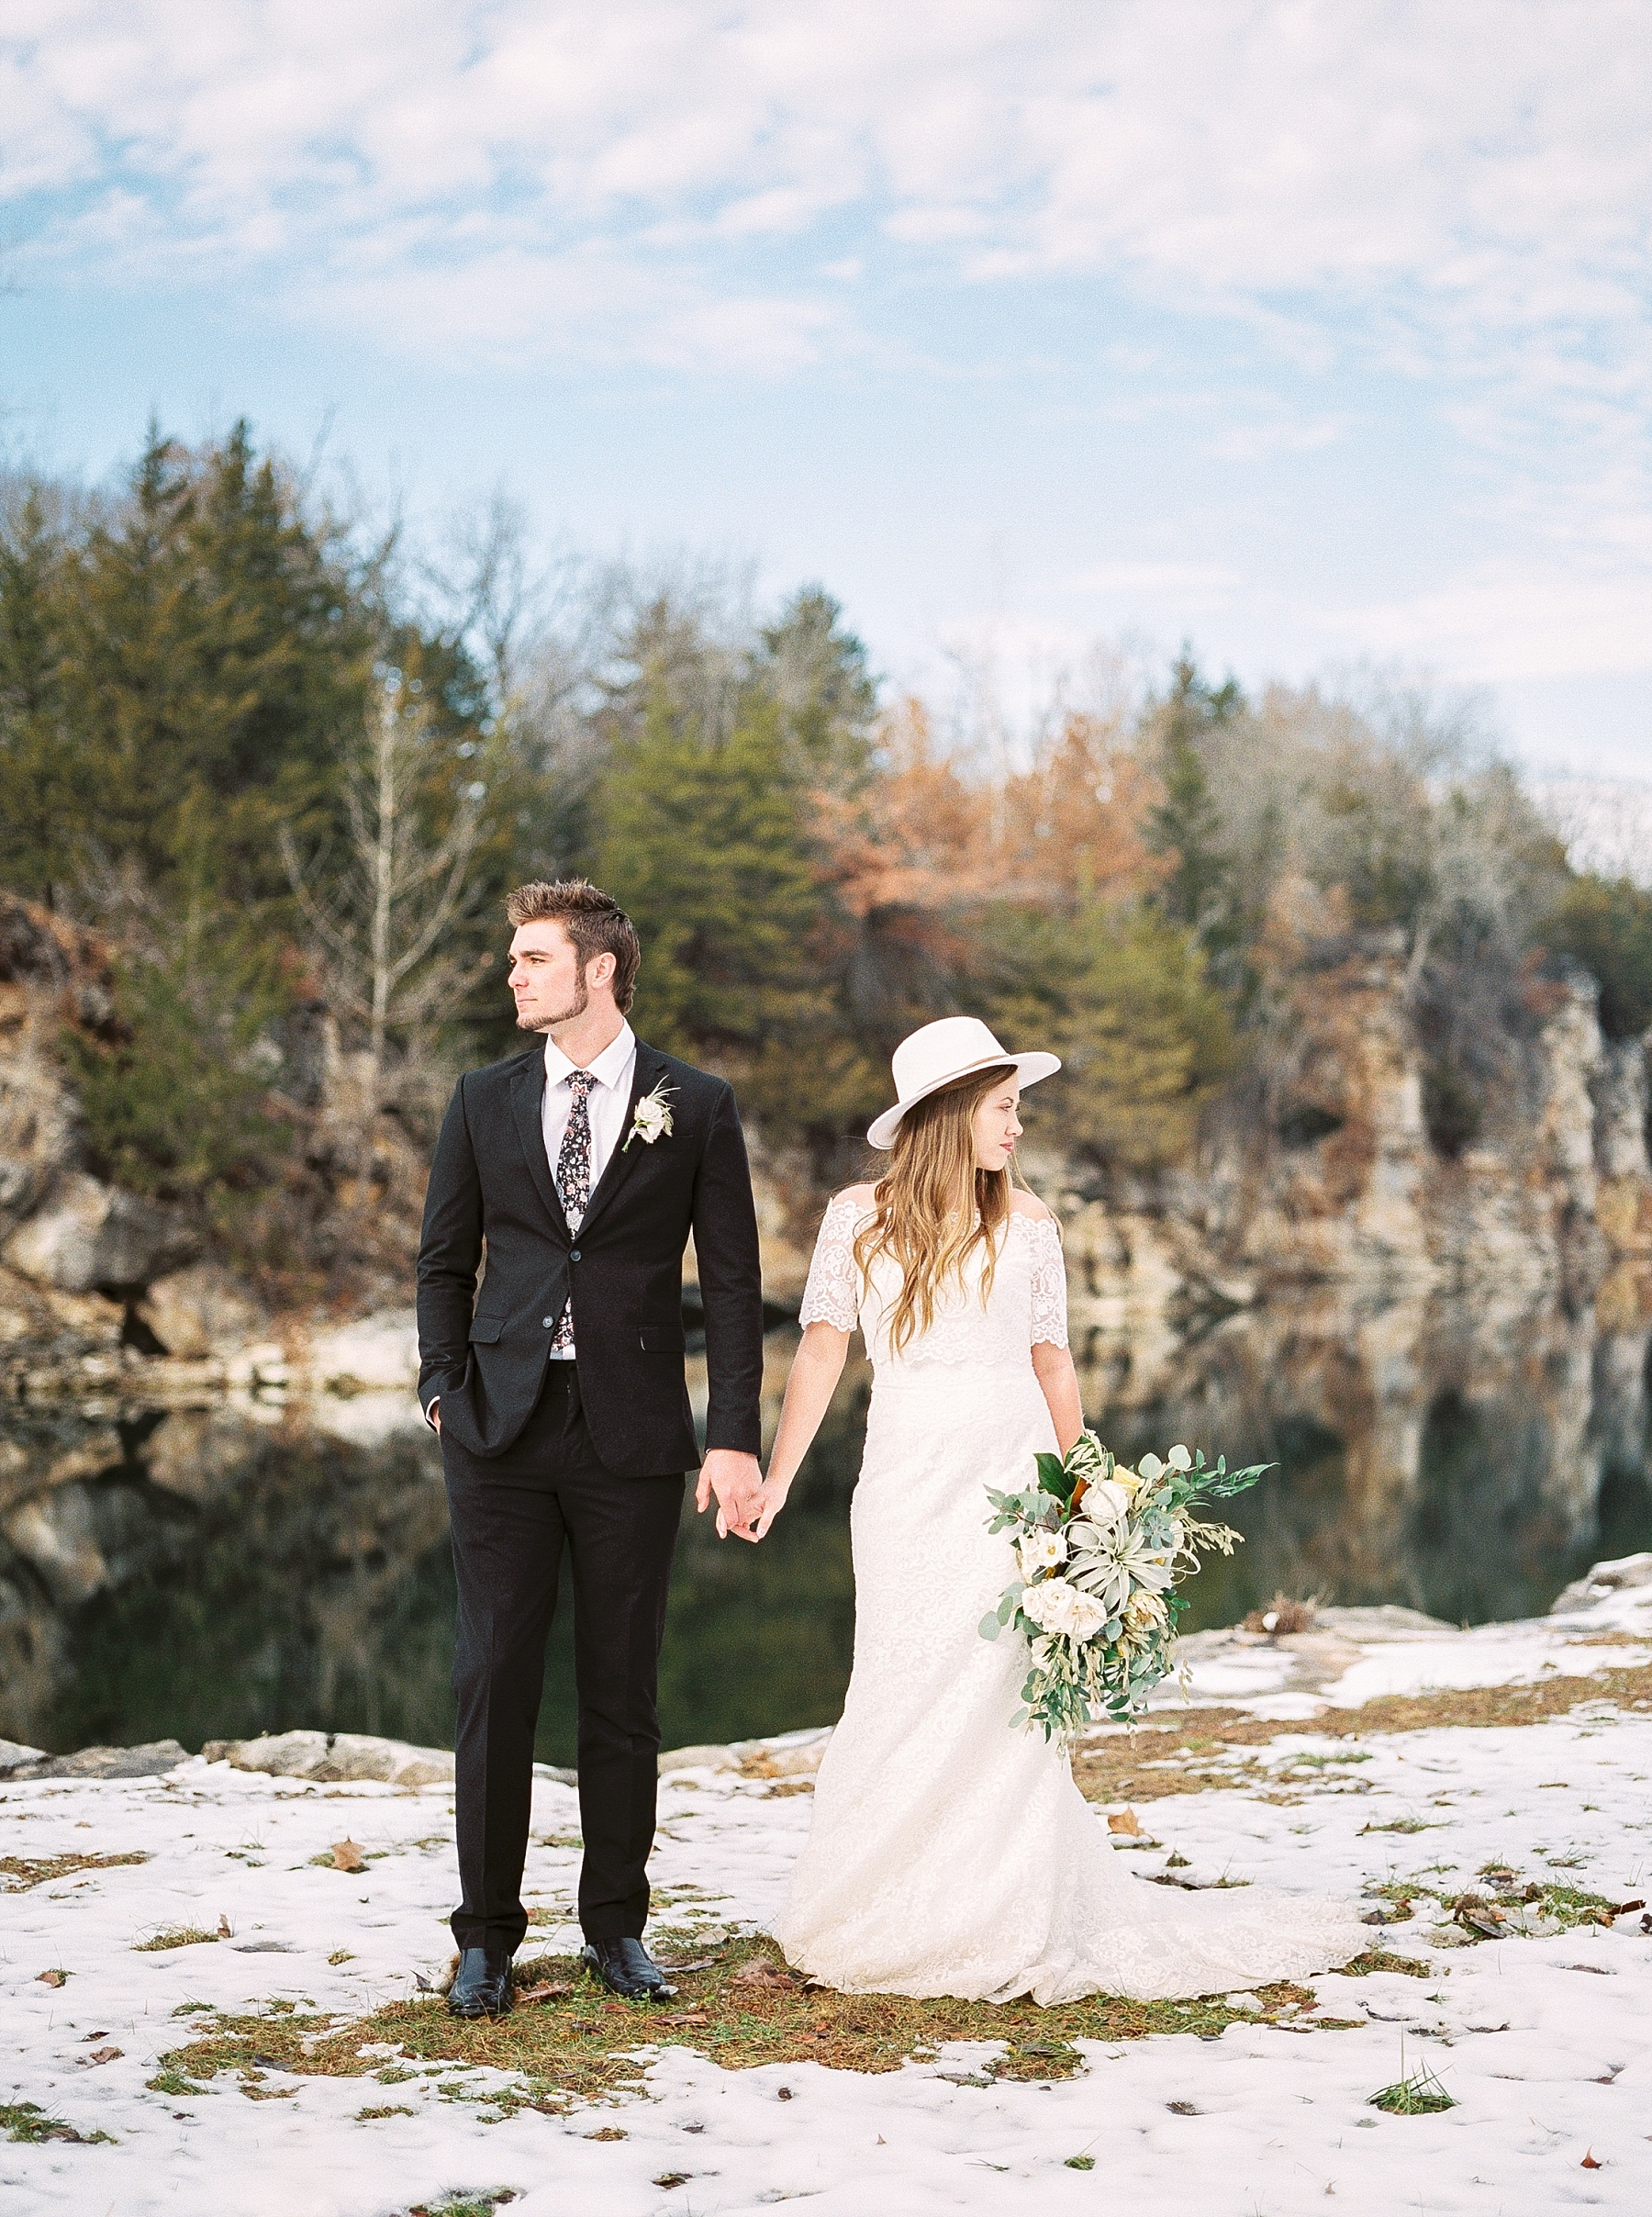 Snowy Winter Wedding at Wildcliff Events Lake With Earthy Jewel Tones and Organic Refined Style by Kelsi Kliethermes Photography Kansas City Missouri Wedding Photographer_0107.jpg